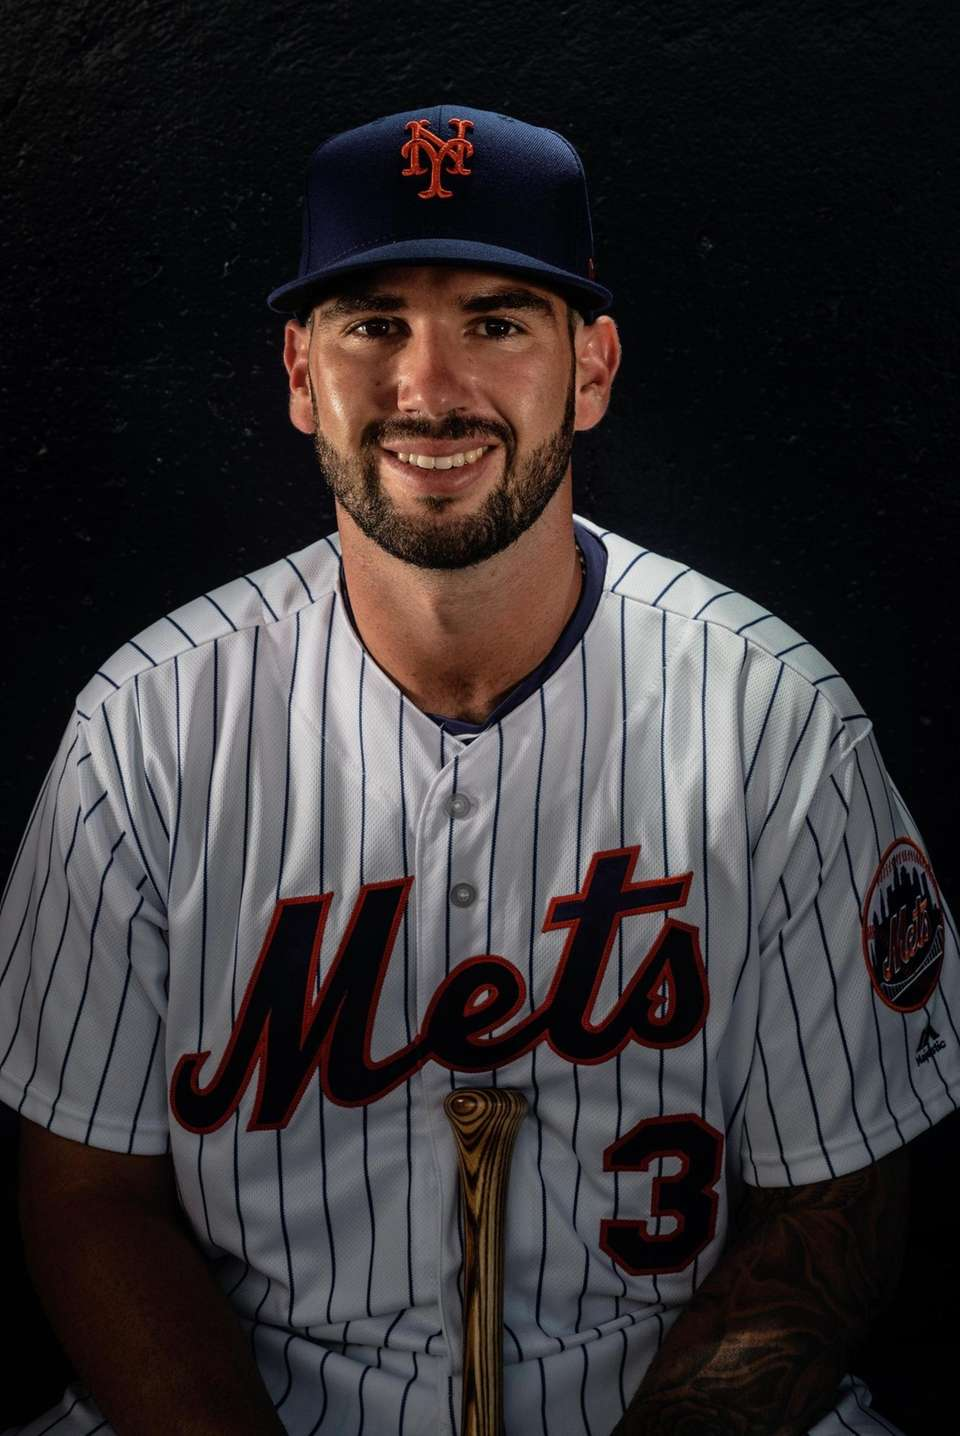 New York Mets catcher Tomas Nido during spring